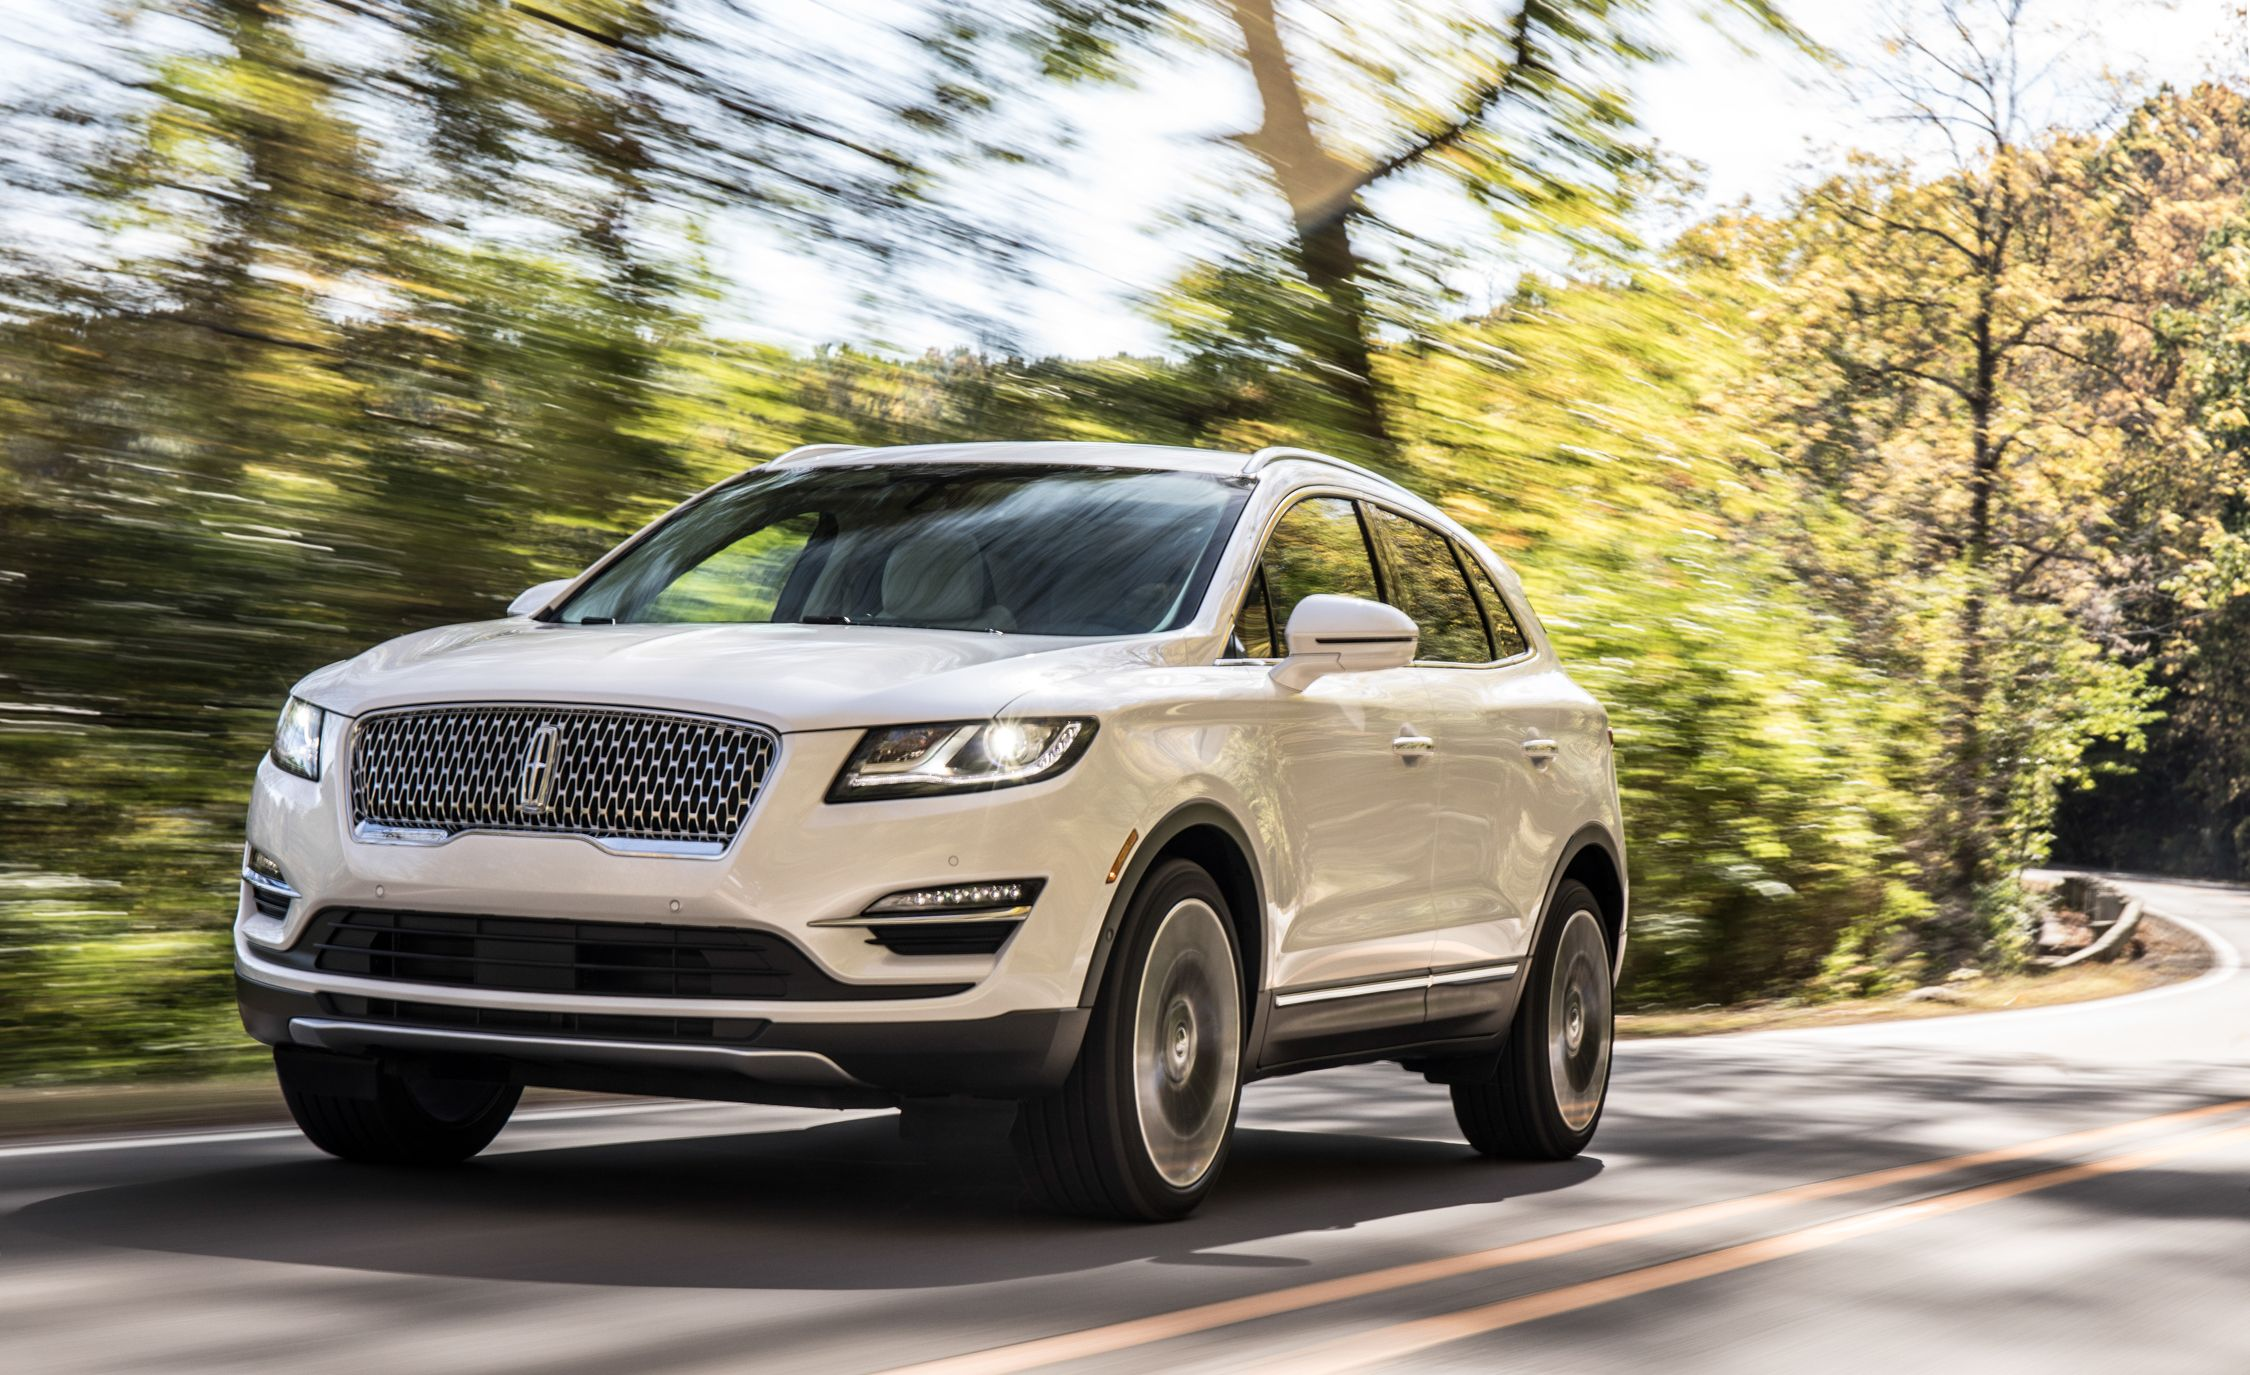 hd and wallpaper images car wide wallpapers mkc lincoln pixel